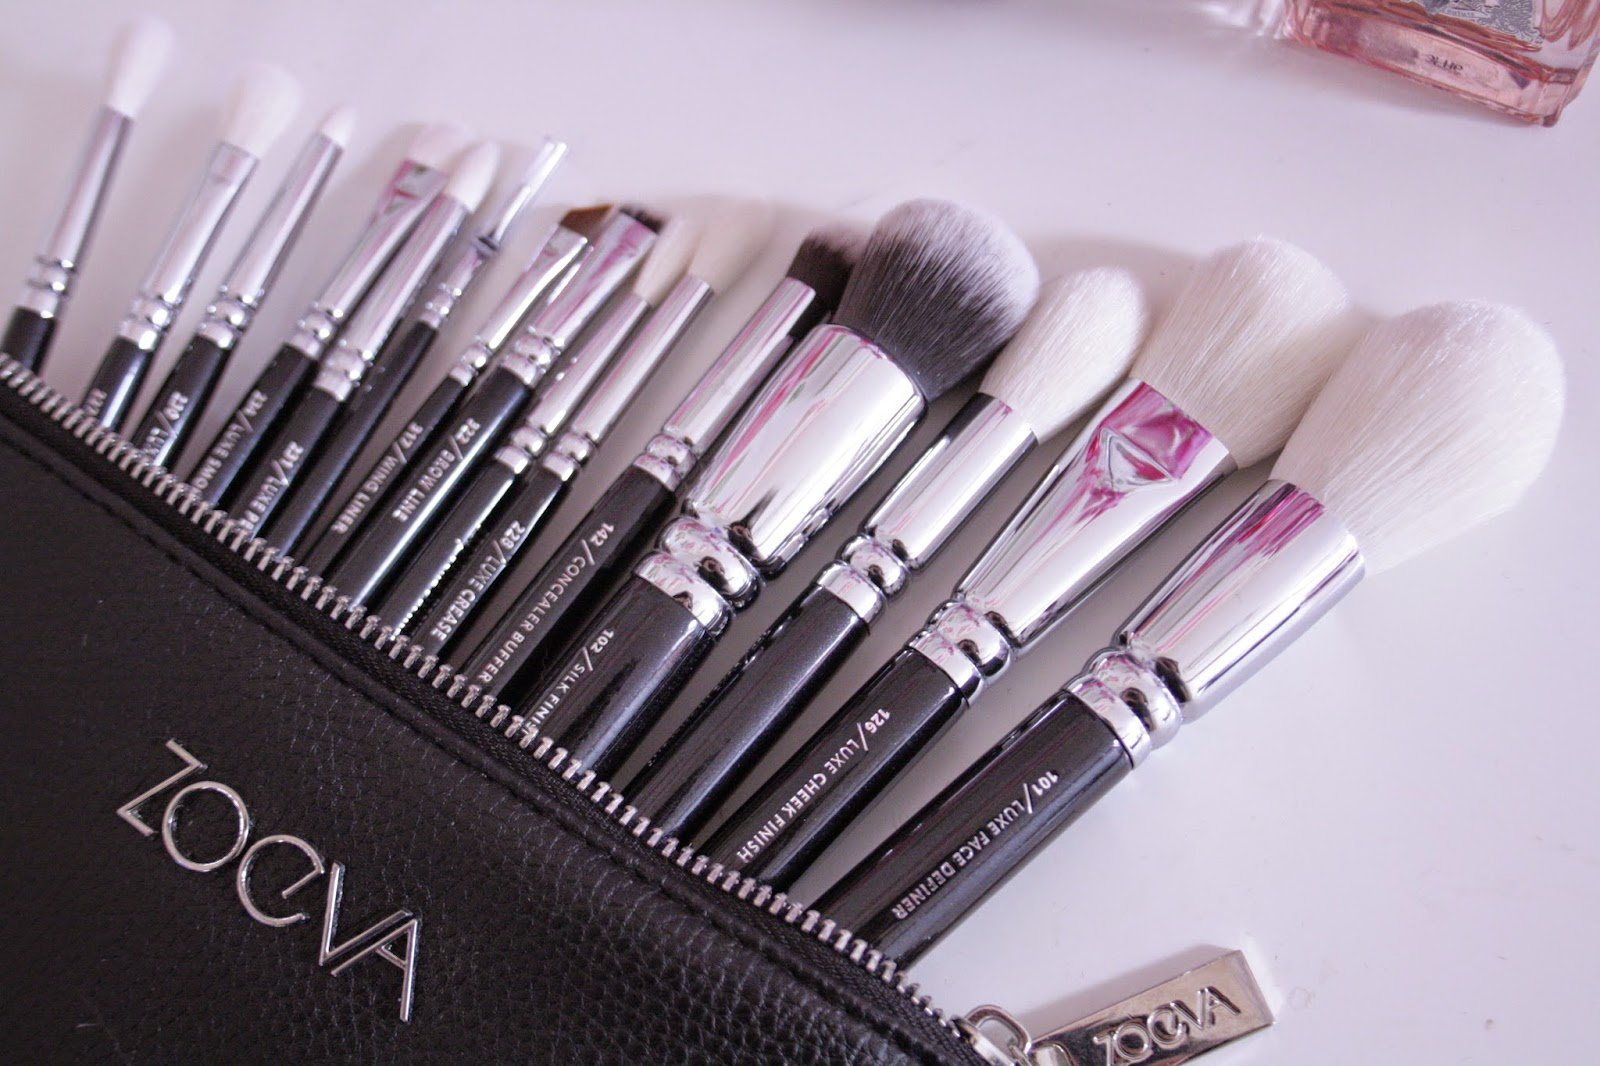 Zoeva Luxe Complete Set Fly Me To The Moon Exclusive Luxe Selection Of 15 Professional Brushes For Face and Eyes Made Of Both, Natural and Synthetic Bristles